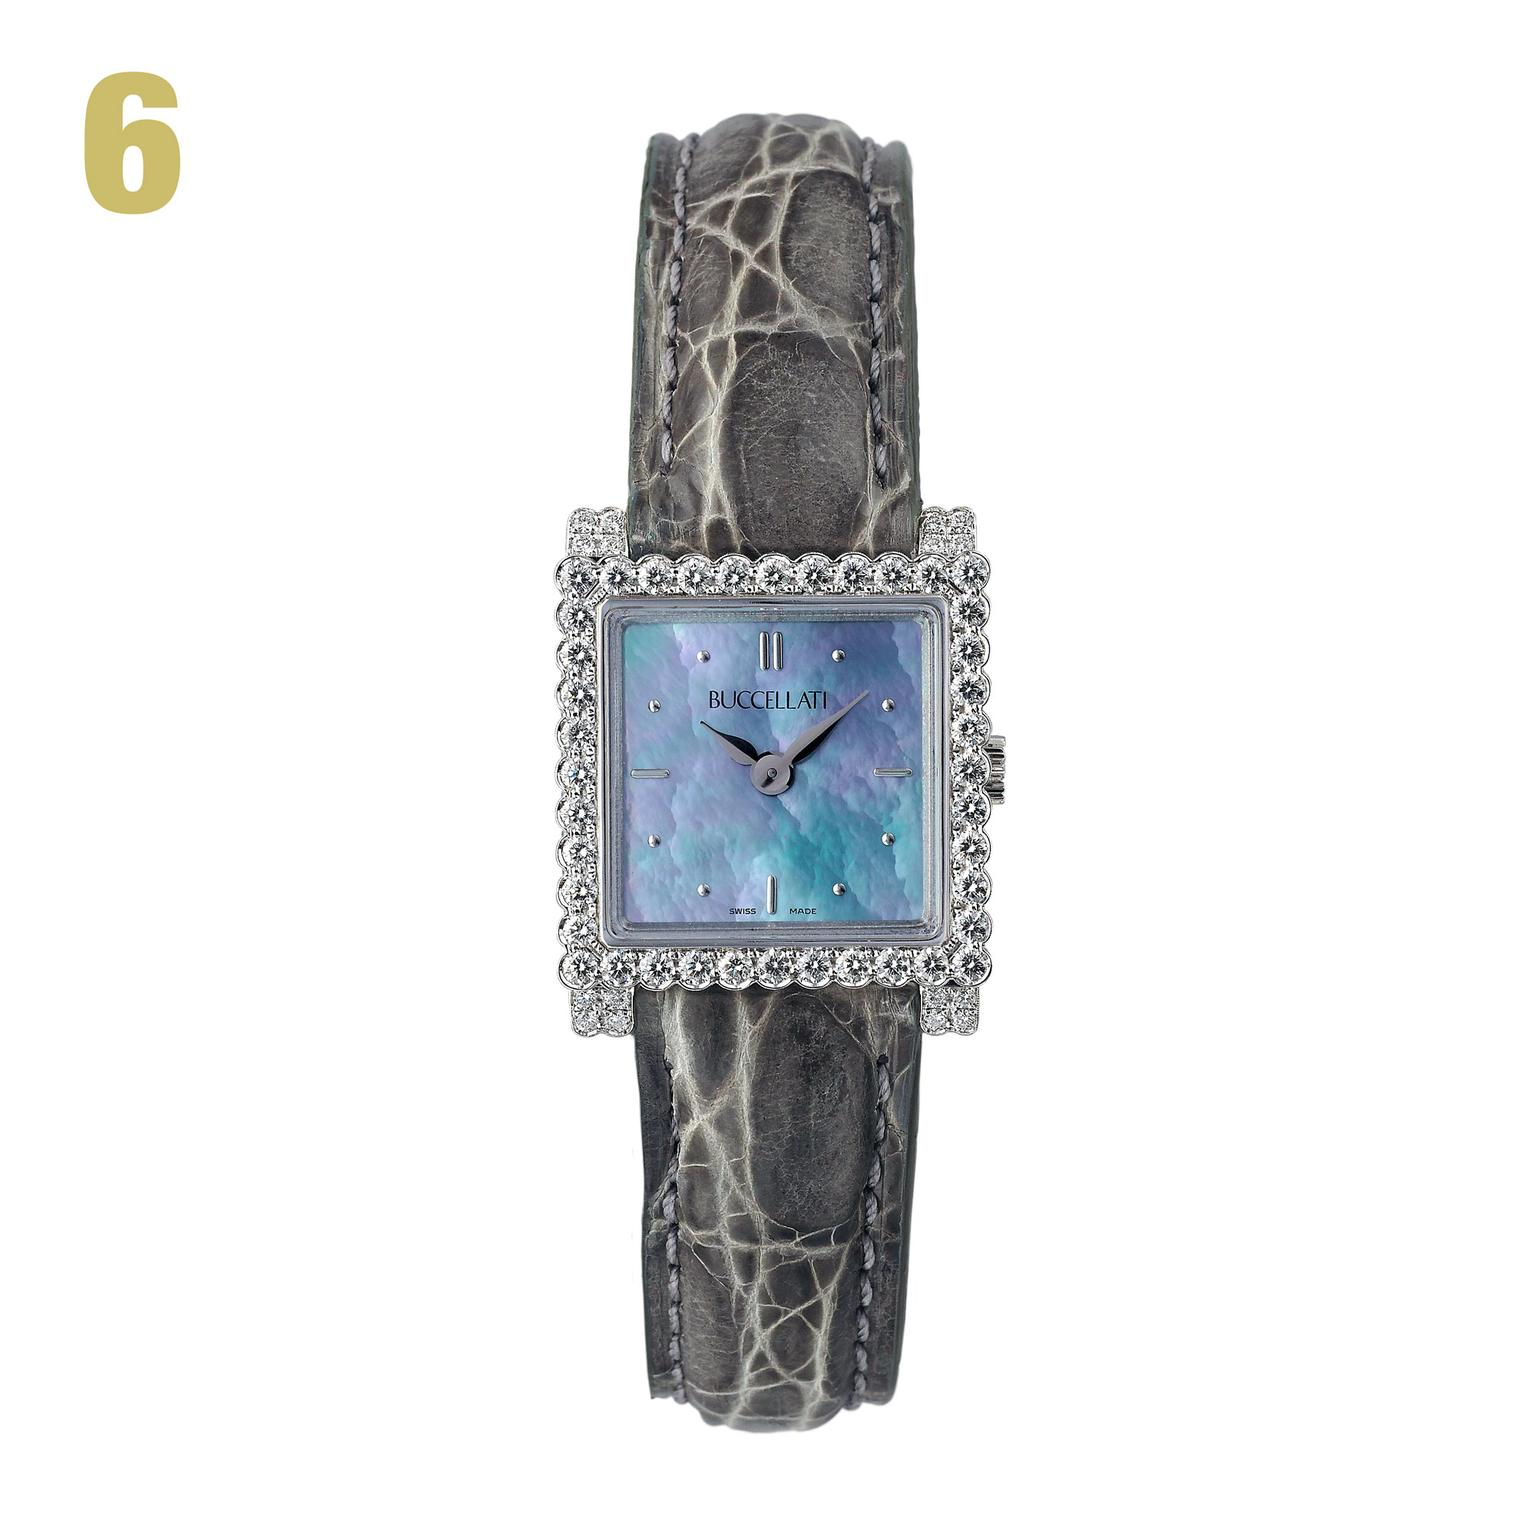 6 Buccellati Venus diamond and white gold watch